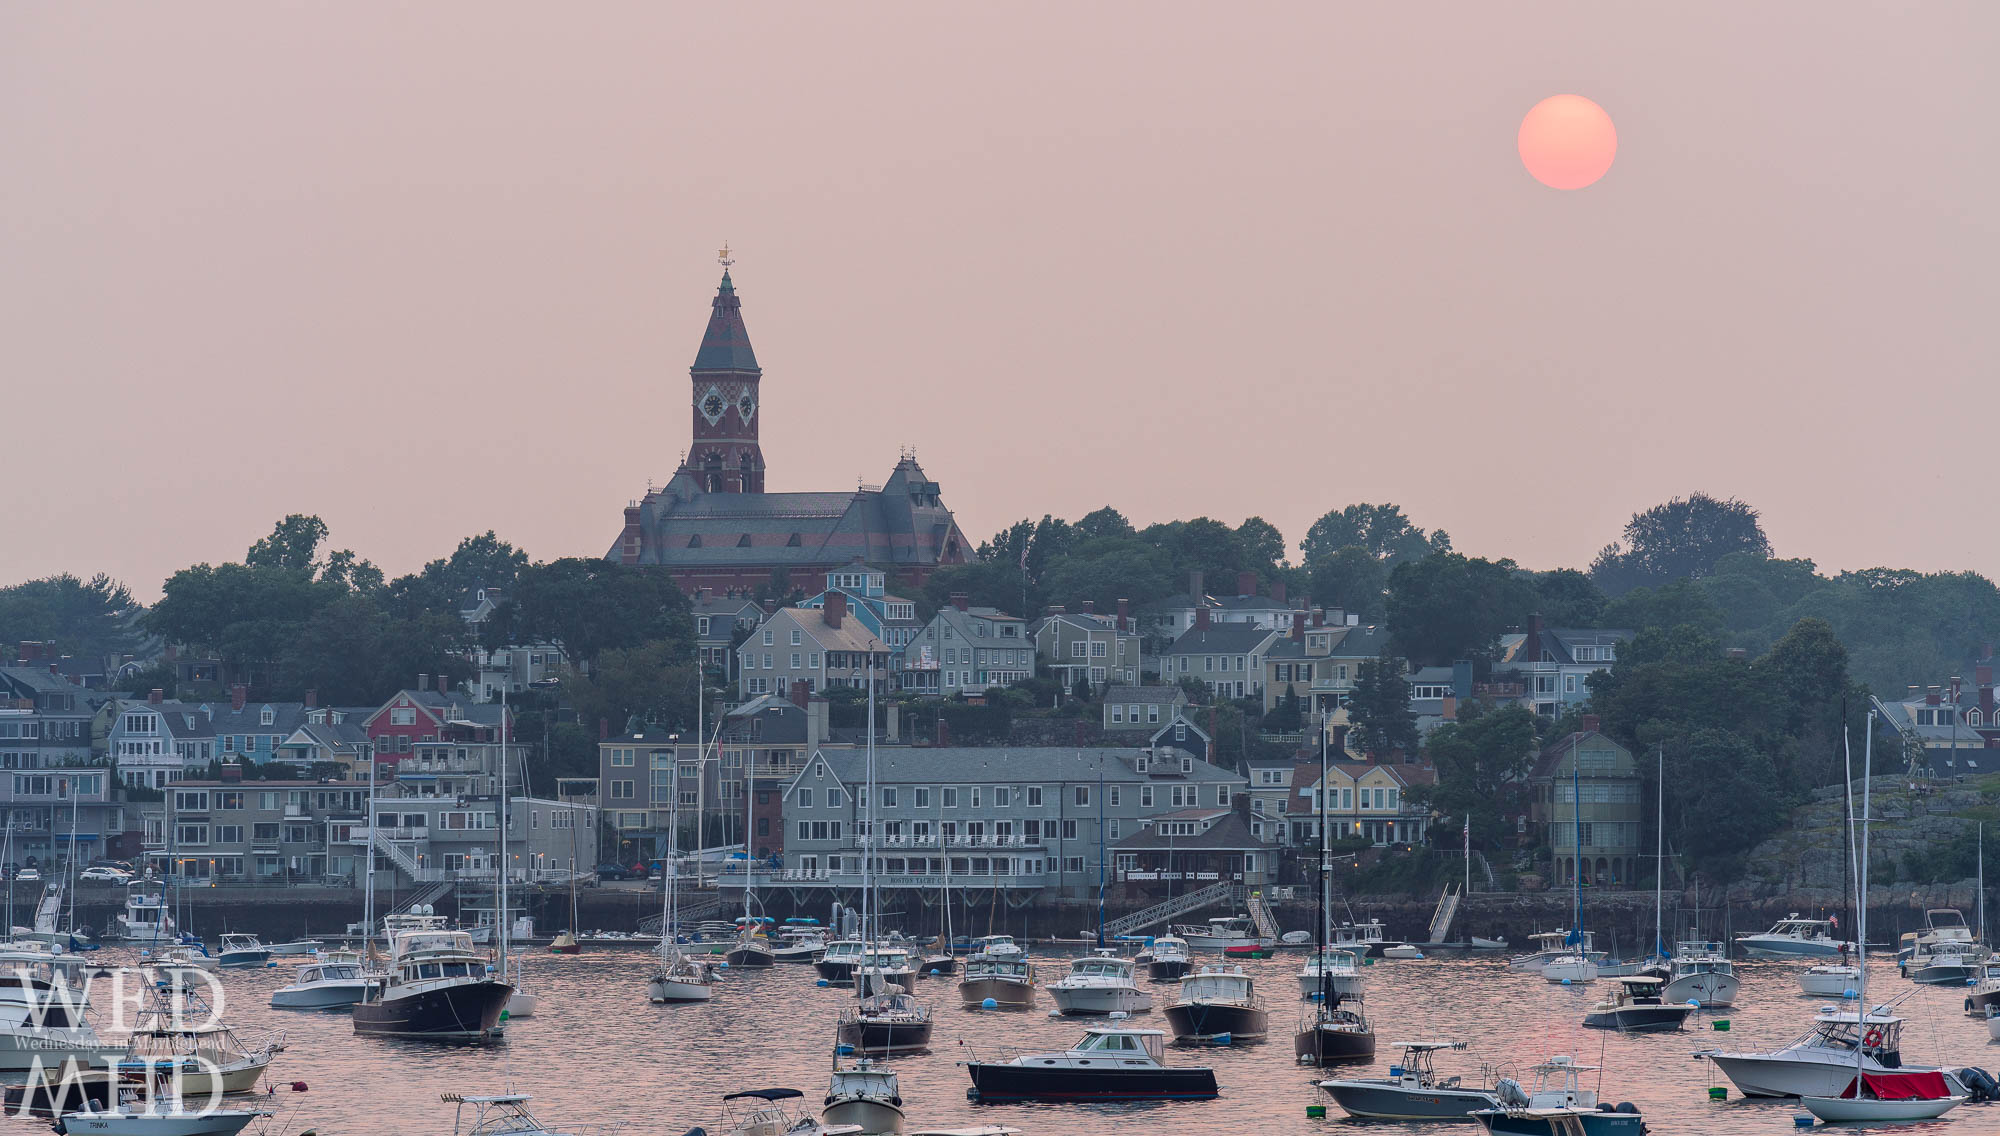 Smoke from fires on the West Coast created conditions for a red sun to set over Abbot Hall and Marblehead harbor